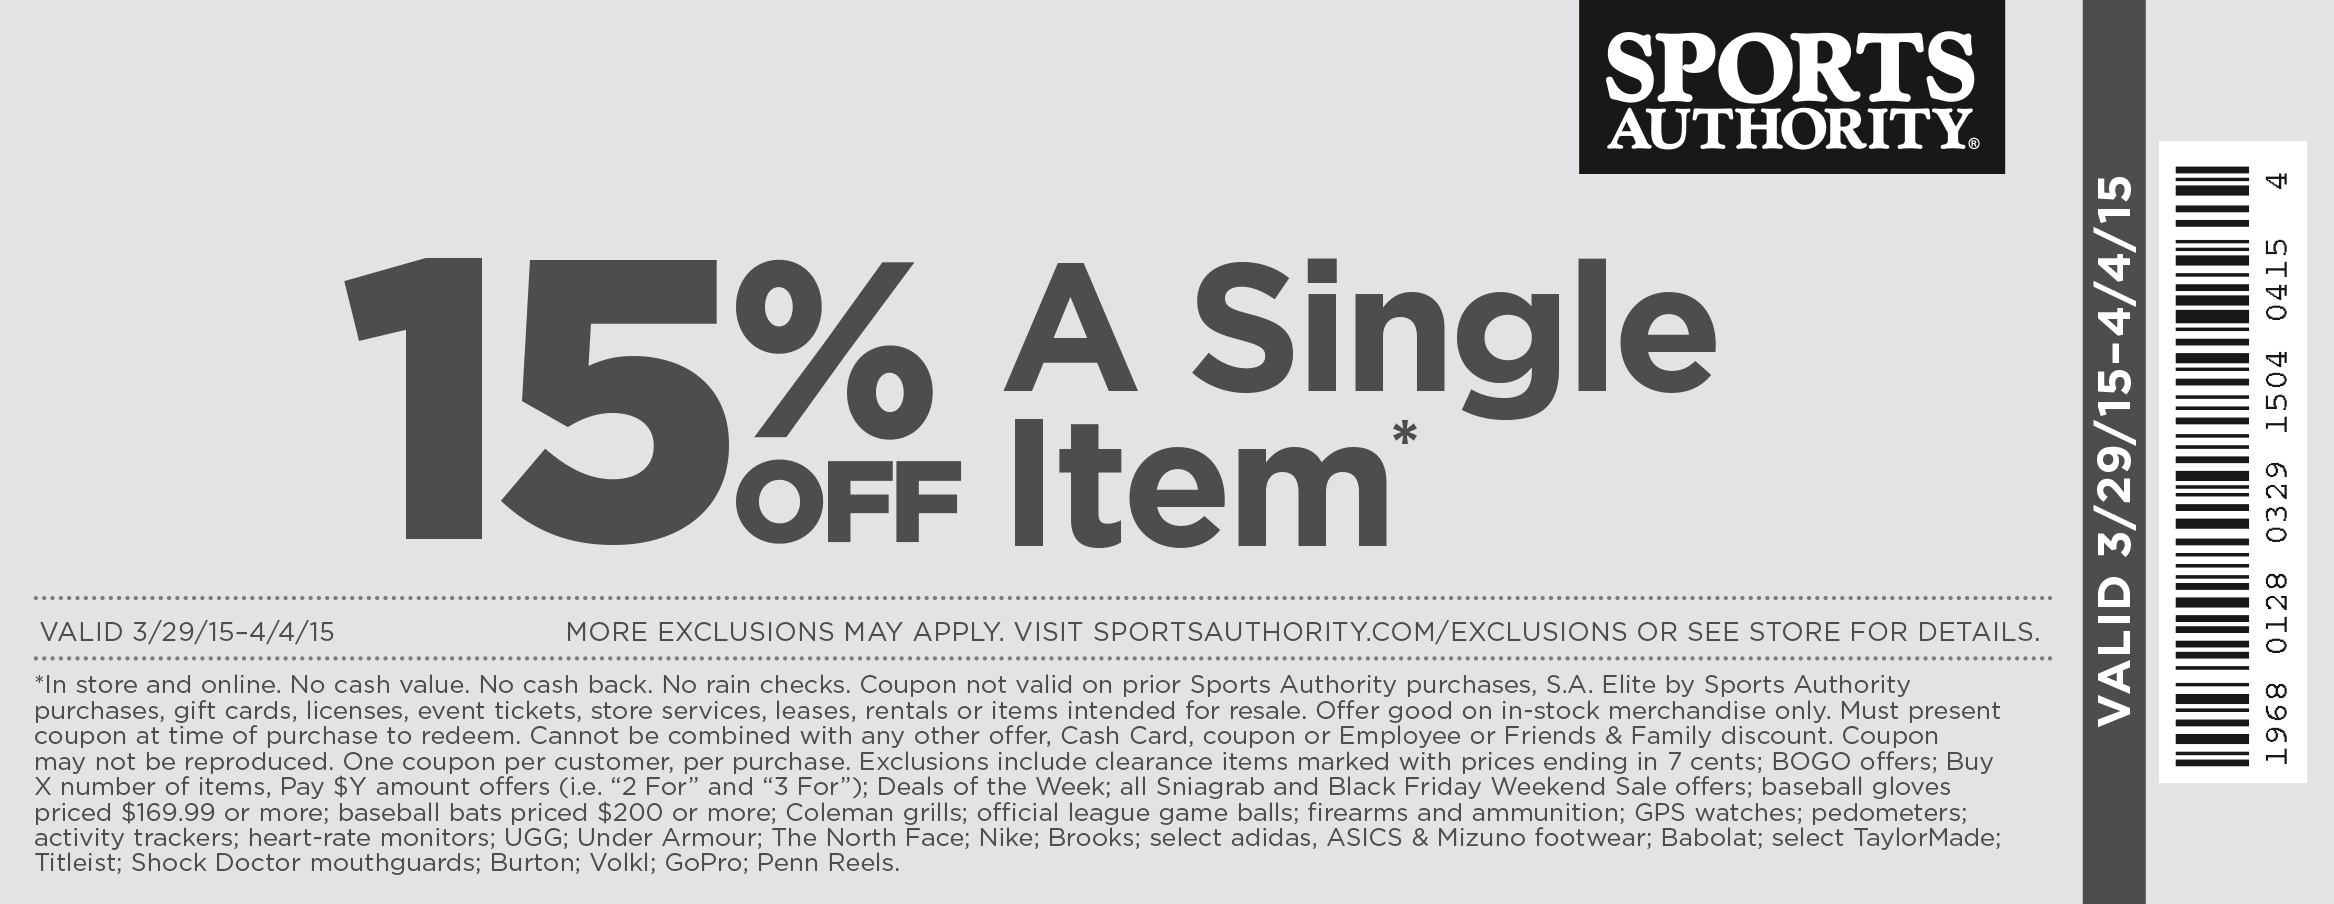 Sports Authority Coupon January 2017 15% off a single item at Sports Authority, ditto online